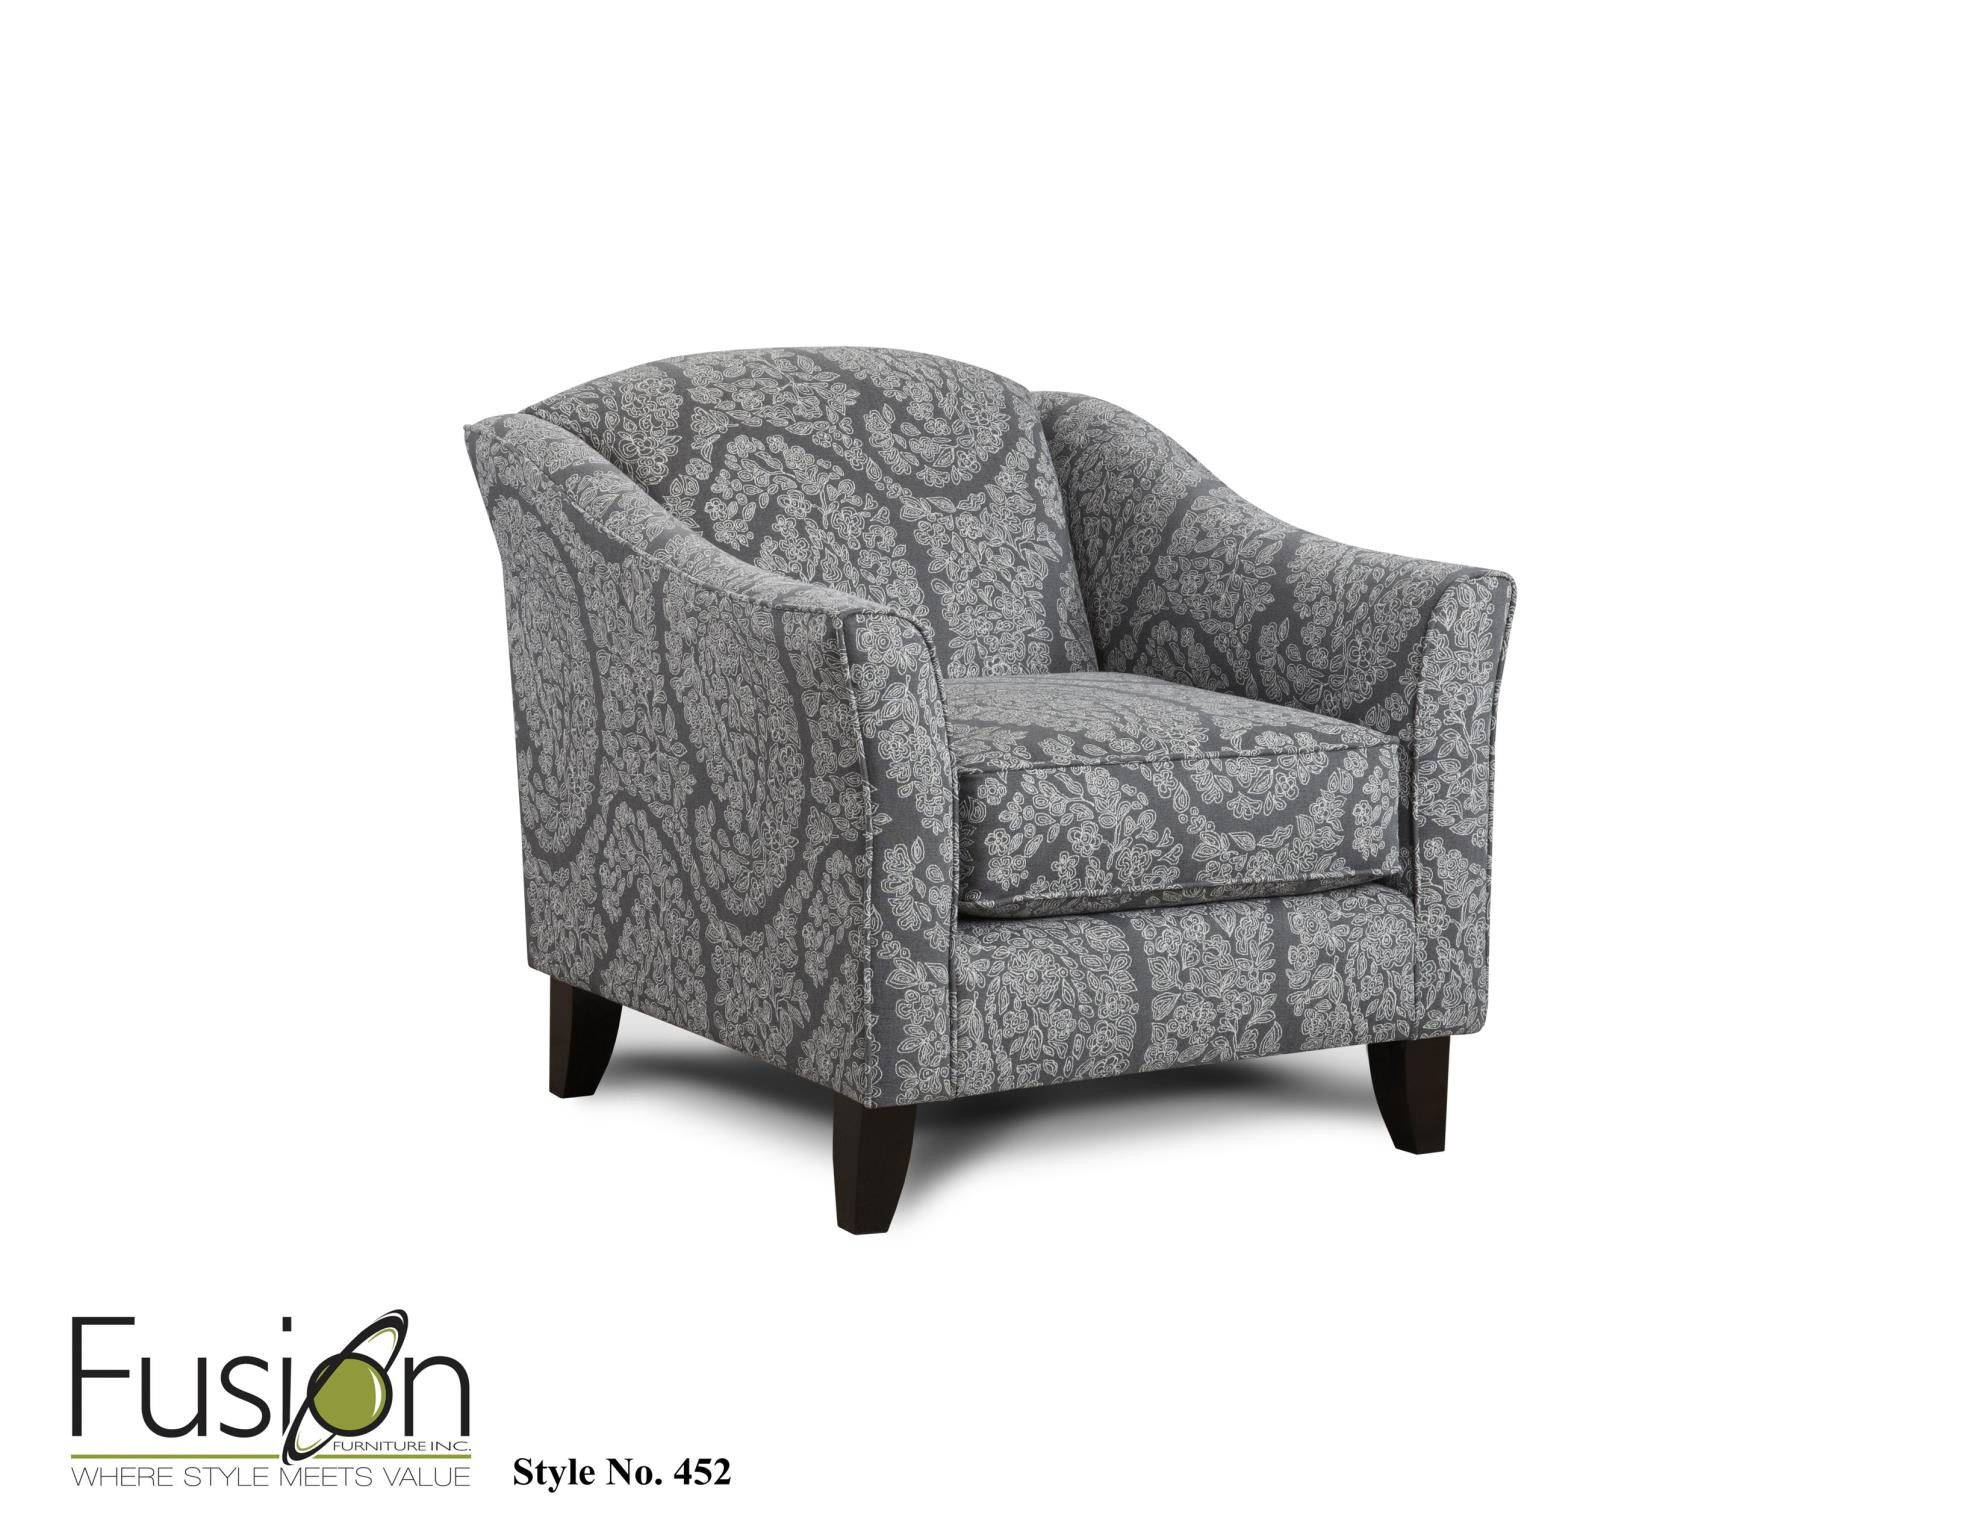 The 2310 KP Chalet Platinum Chair 452ELLA PEWTER